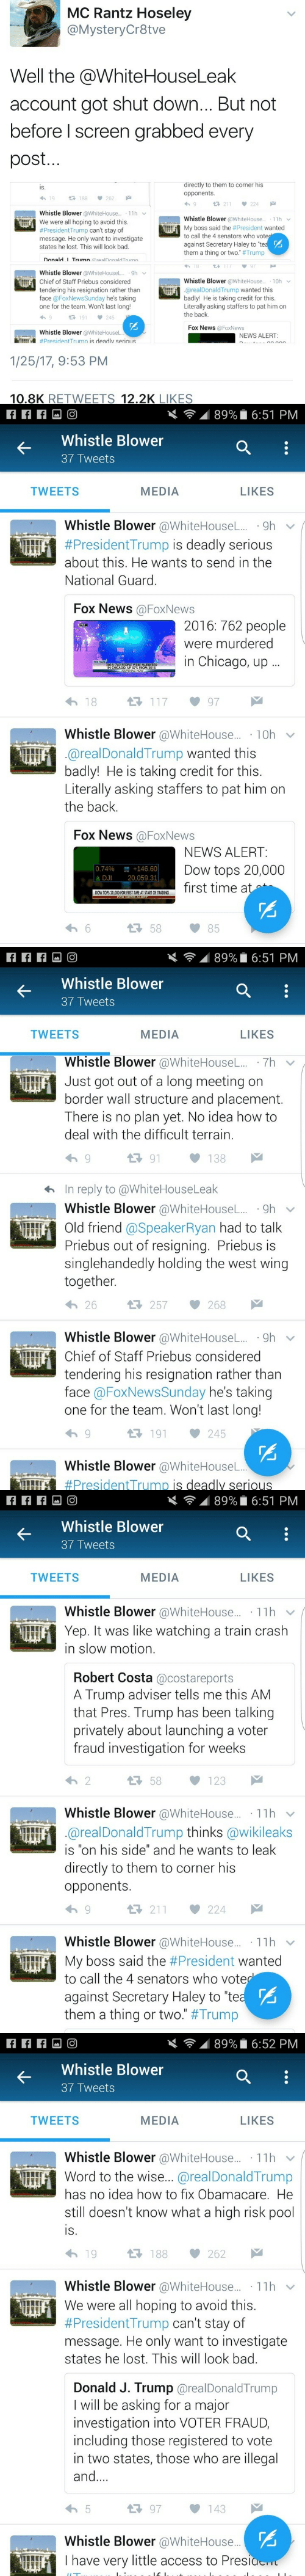 "dji: MC Rantz Hoseley  @MysteryCr8tve  Well the @WhiteHouseLeak  account got shut down... But not  before I screen grabbed every  post...  directly to them to corner his  opponents  is.  19  188  262  224  好211  Whistle Blower @WhiteHouse... 11h  We were all hoping to avoid this  #PresidentTrump can't stay of  message. He only want to investigate  states he lost. This will look bad.  Whistle Blower @WhiteHouse... 11h  My boss said the #President wanted  to call the 4 senators who voter  against Secretary Haley to ""teaE  them a thing or two. #Trump  I  Donald TrumnrealDonaldTrumn  97  18  Whistle Blower @WhiteHouseL.. 9h  Chief of Staff Priebus considered  tendering his resignation rather than  face @FoxNewsSunday he's taking  one for the team. Won't last long!  Whistle Blower @WhiteHouse..  10h  @realDonaldTrump wanted this  L  badly! He is taking credit for this  Literally asking staffers to pat him on  the back  1 191  245  9  Fox News @Fox News  Whistle Blower @WhiteHouseL.  NEWS ALERT:  #President Trumn is deadlv serious  1/25/17, 9:53 PM  10.8K RETVWEETS 12.2K LIKES   89% 6:51 PM  Whistle Blower  37 Tweets  MEDIA  TWEETS  LIKES  Whistle Blower @WhiteHouseL.. 9h  #PresidentTrump is deadly serious  about this. He wants to send in the  National Guard.  Fox News @FoxNews  2016: 762 people  were murdered  in Chicago, up  NCHCACOPLE WERE MURDERED  UP 57% FROM 2015  117  18  97  Whistle Blower @WhiteHouse.. 10h  @realDonaldTrump wanted this  badly! He is taking credit for this.  Literally asking staffers to pat him on  the back.  Fox News @FoxNews  NEWS ALERT:  0.74%  A DJI  +146.60  20,059.31  Dow tops 20,000  first time at  DOW TOPS 20,000 FOR FIRST TIME AT START OF TRADING  58  6  85   89% 6:51 PM  Whistle Blower  37 Tweets  MEDIA  TWEETS  LIKES  Whistle Blower @WhiteHouseL. 7h  Just got out of a long meeting on  border wall structure and placement.  There is no plan yet. No idea how to  deal with the difficult terrain.  91  138  In reply to @WhiteHouse Leak  Whistle Blower@WhiteHouseL... 9h  Old friend @SpeakerRyan had to talk  Priebus out of resigning. Priebus is  singlehandedly holding the west wing  together.  1257  268  26  Whistle Blower @WhiteHouseL... 9h  Chief of Staff Priebus considered  tendering his resignation rather than  face @FoxNewsSunday he's taking  one for the team. Won't last long!  191  245  Whistle Blower @WhiteHouseL...  #PresidentTrump is deadlv serious   89% 6:51 PM  Whistle Blower  37 Tweets  TWEETS  MEDIA  LIKES  Whistle Blower @WhiteHouse.... 11h  Yep. It was like watching a train crash  in slow motion  Robert Costa @costareports  A Trump adviser tells me this AM  that Pres. Trump has been talking  privately about launching a voter  fraud investigation for weeks  t58  2  123  Whistle Blower @WhiteHouse.. 11h  @realDonaldTrump thinks @wikileaks  is ""on his side"" and he wants to leak  directly to them to corner his  opponents.  1 211  224  Whistle Blower @WhiteHouse.. 11h  My boss said the #President wanted  to call the 4 senators who voter  against Secretary Haley to ""tea  them a thing or two."" #Trump   89% 6:52 PM  Whistle Blower  37 Tweets  MEDIA  TWEETS  LIKES  Whistle Blower @WhiteHouse.. 11h  Word to the wise... @realDonaldTrump  has no idea how to fix Obamacare. He  still doesn't know what a high risk pool  is.  L188  262  19  Whistle Blower @WhiteHouse.... 11h  We were all hoping to avoid this.  #PresidentTrump can't stay of  message. He only want to investigate  states he lost. This will look bad.  Donald J. Trump @realDonaldTrump  I will be asking for a major  investigation into VOTER FRAUD  including those registered to vote  in two states, those who are illegal  and...  5  97  143  Whistle Blower @WhiteHouse..  Thave very little access to Presia  lT"